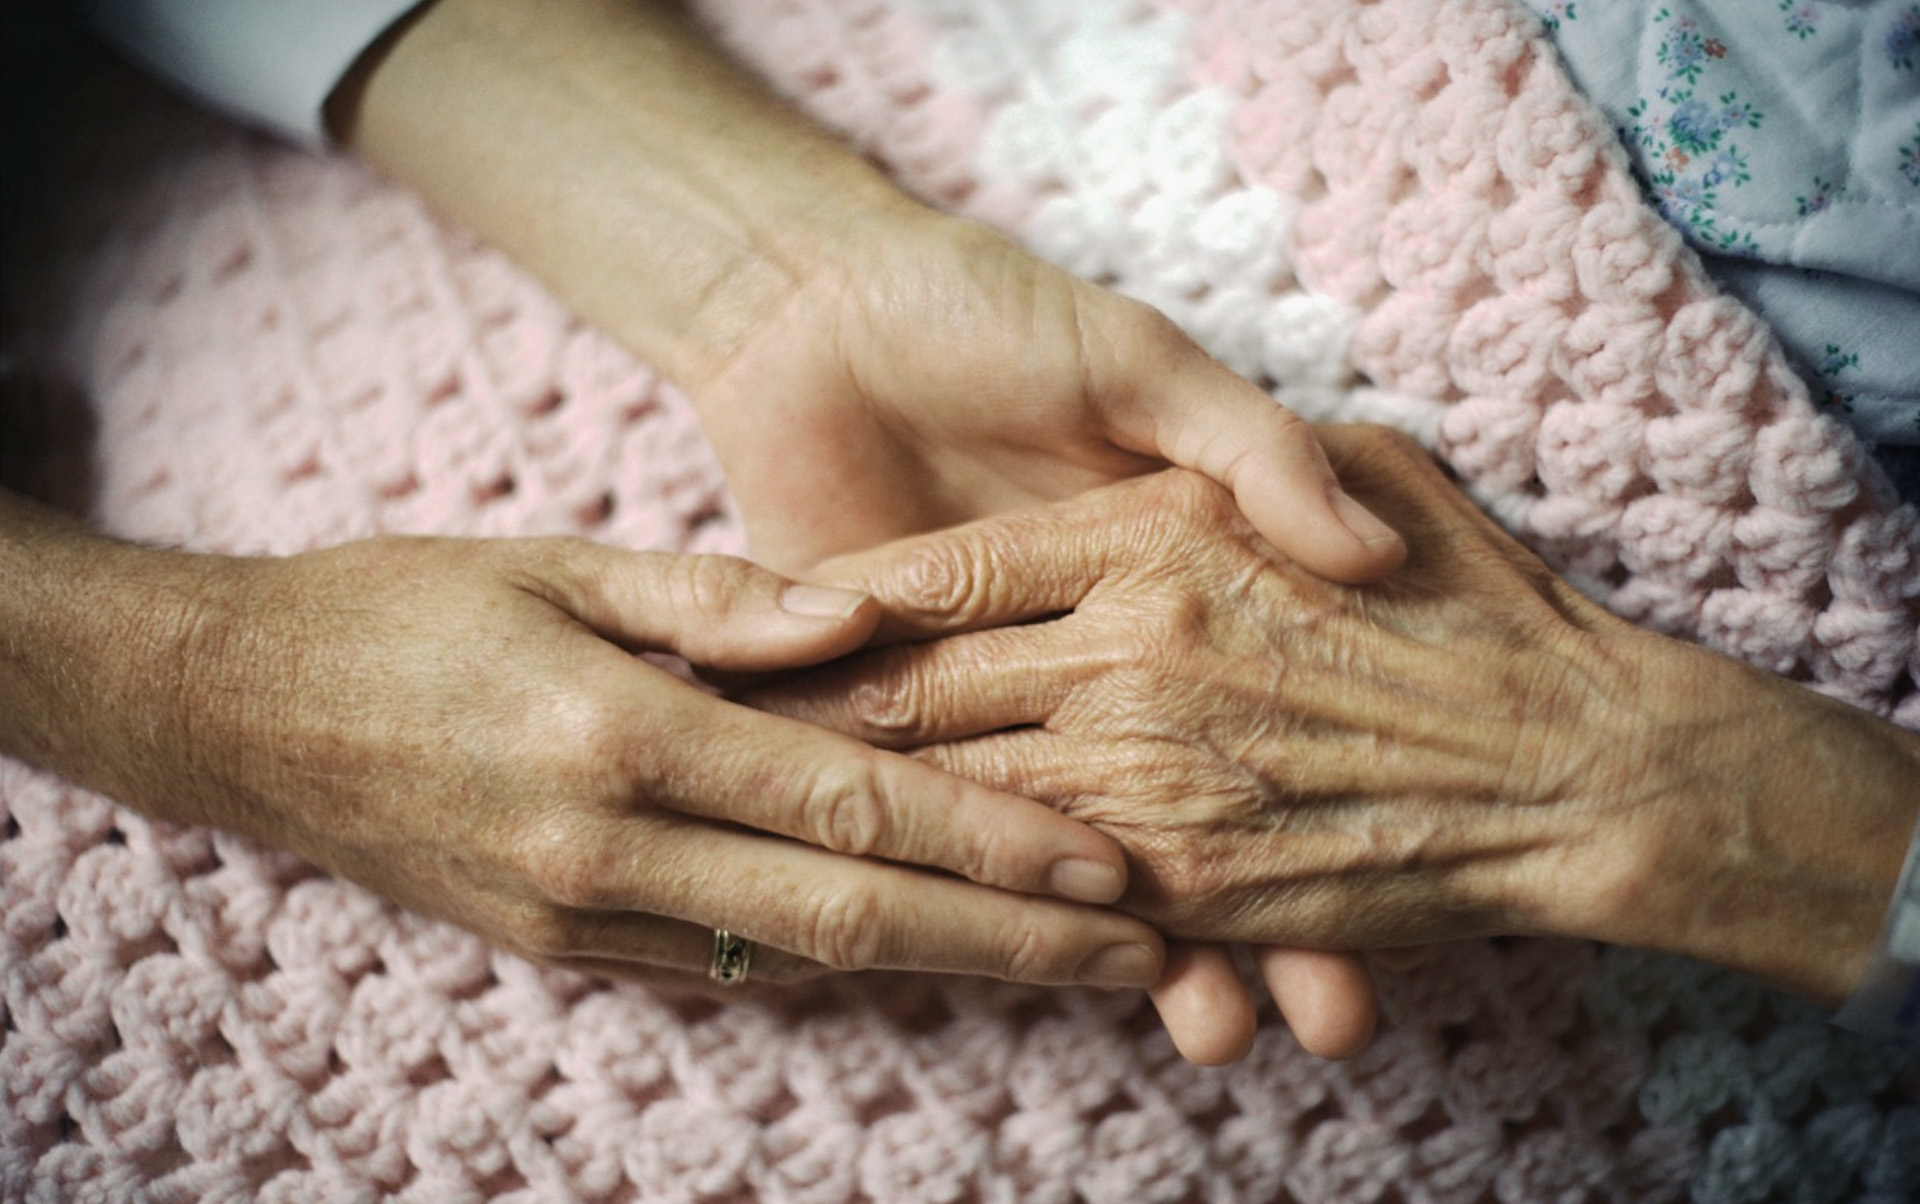 holding hand of elderly patient